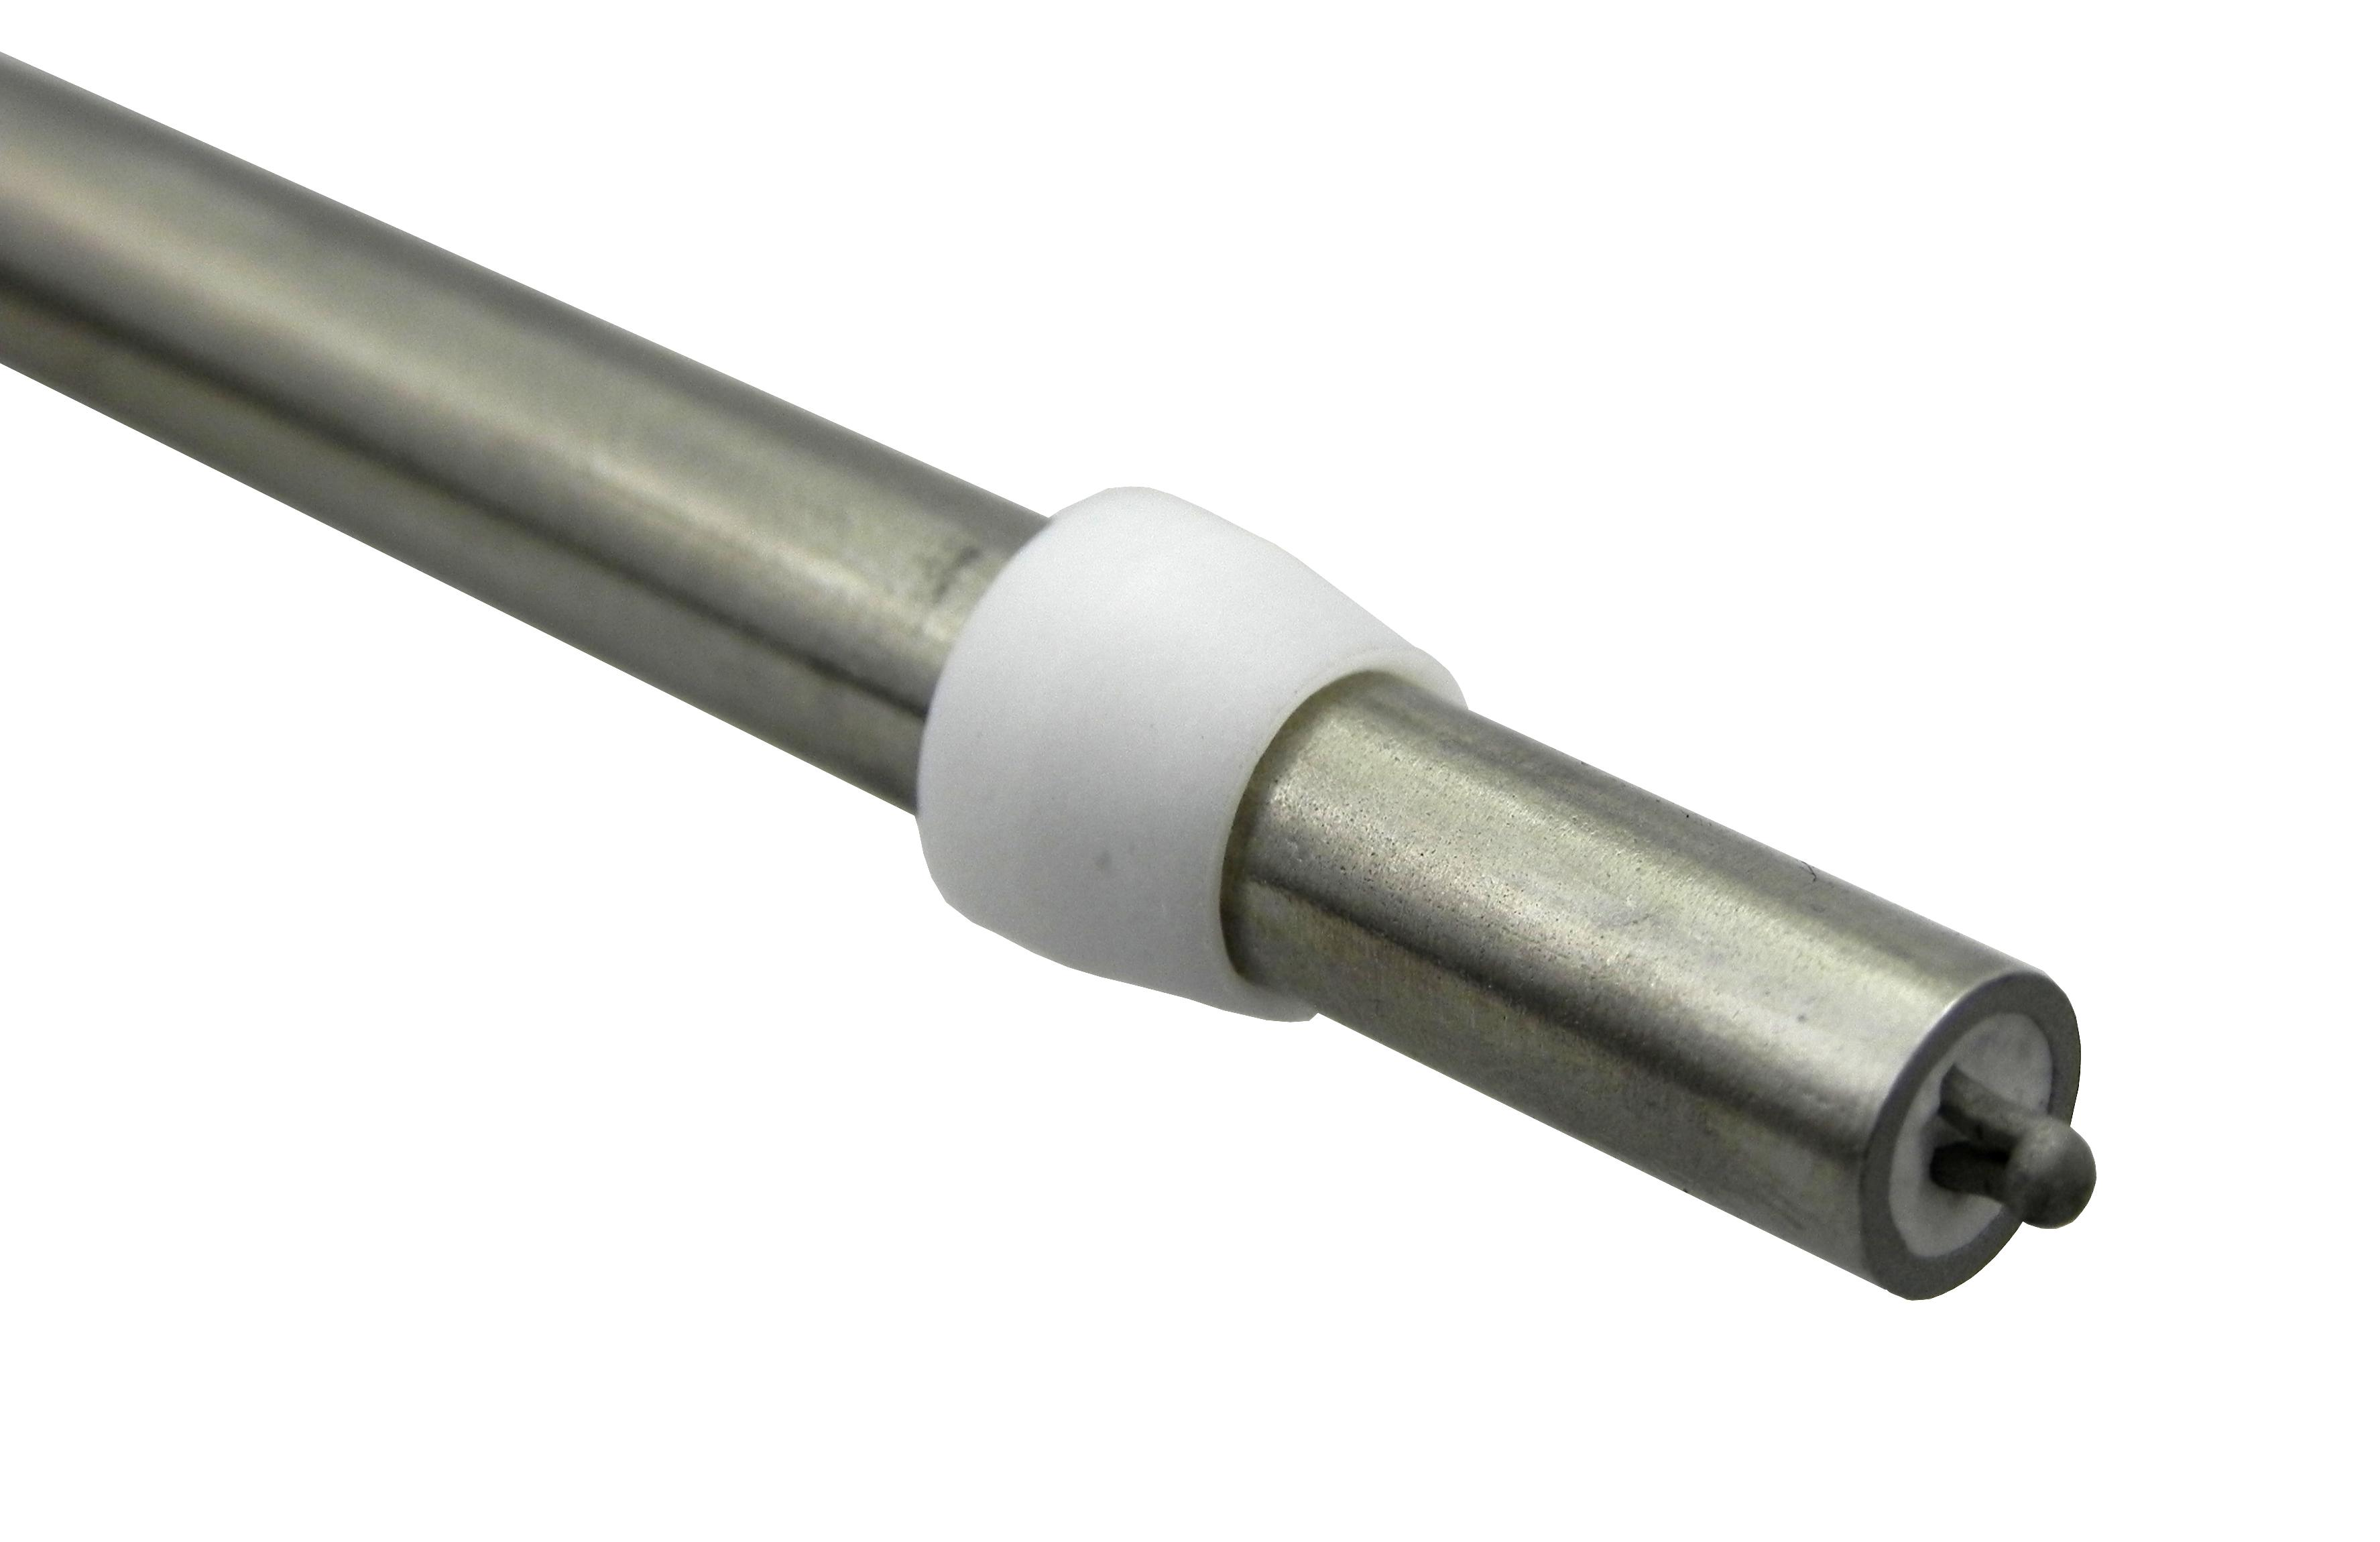 Ptfe ferrule for thermocouple compression fitting